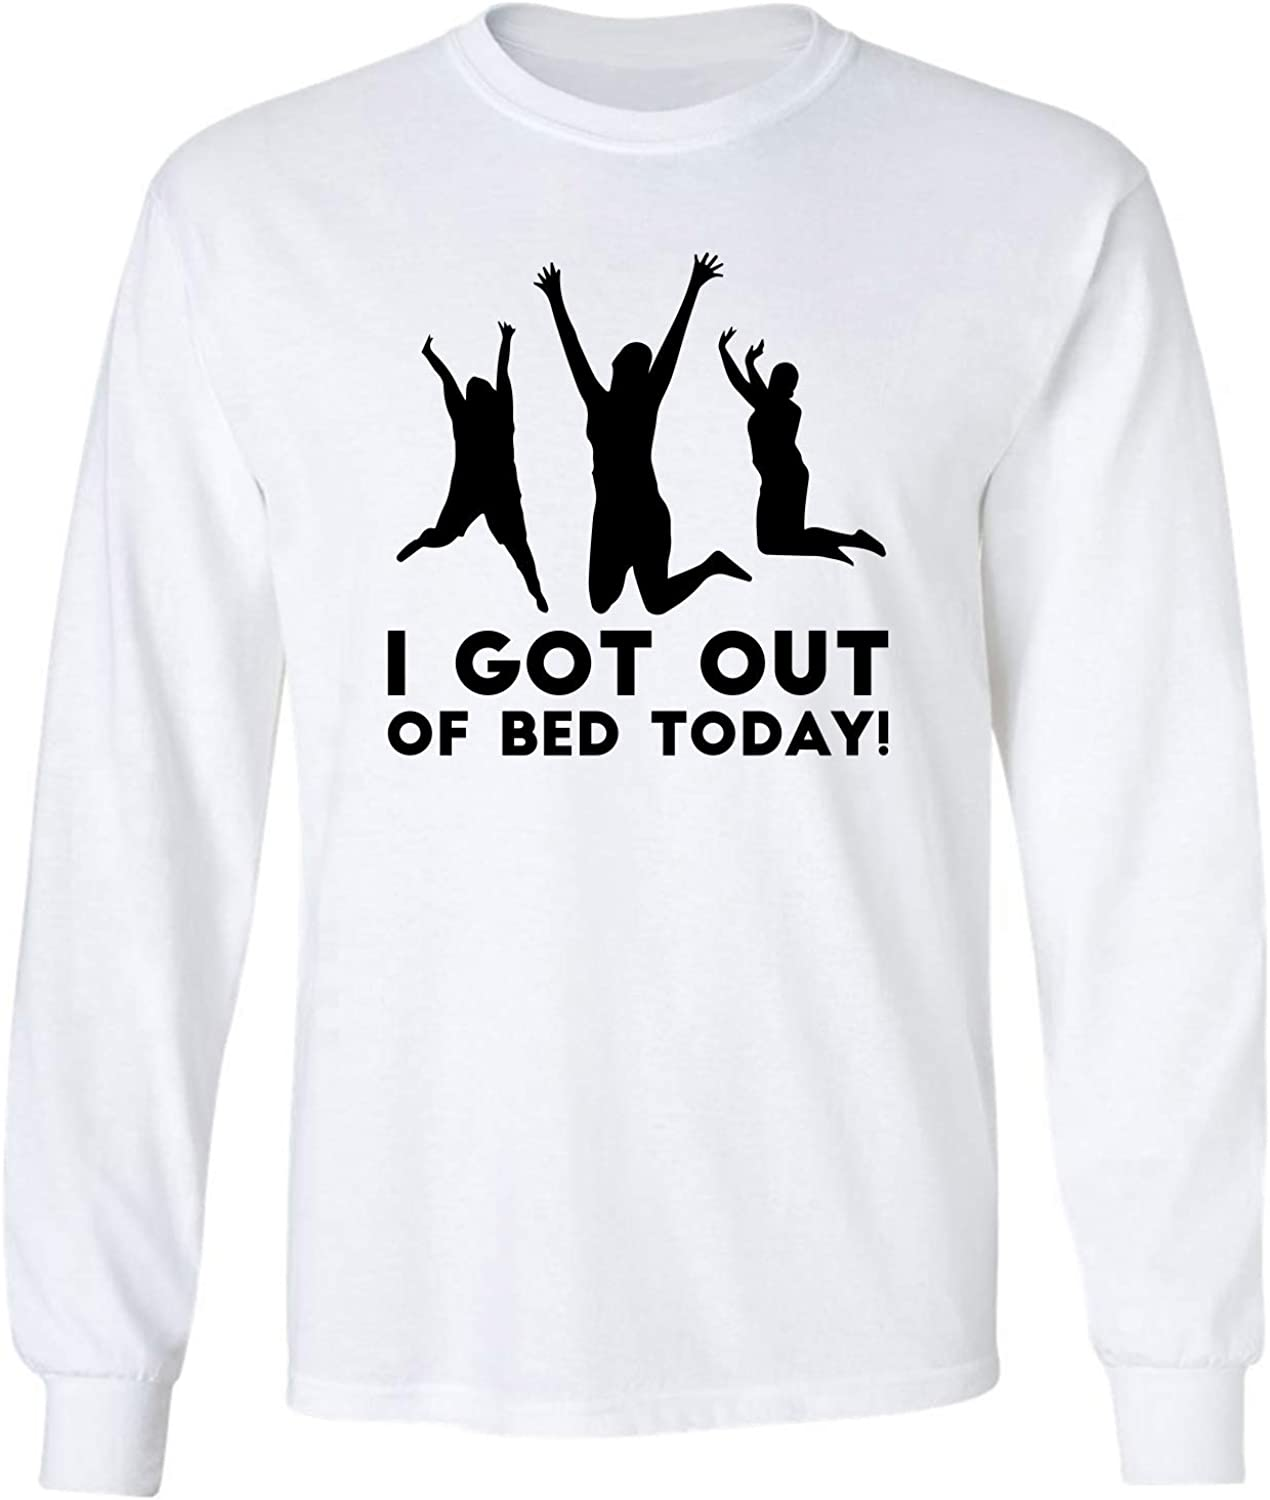 I Got Out of Bed Today! Adult Long Sleeve T-Shirt